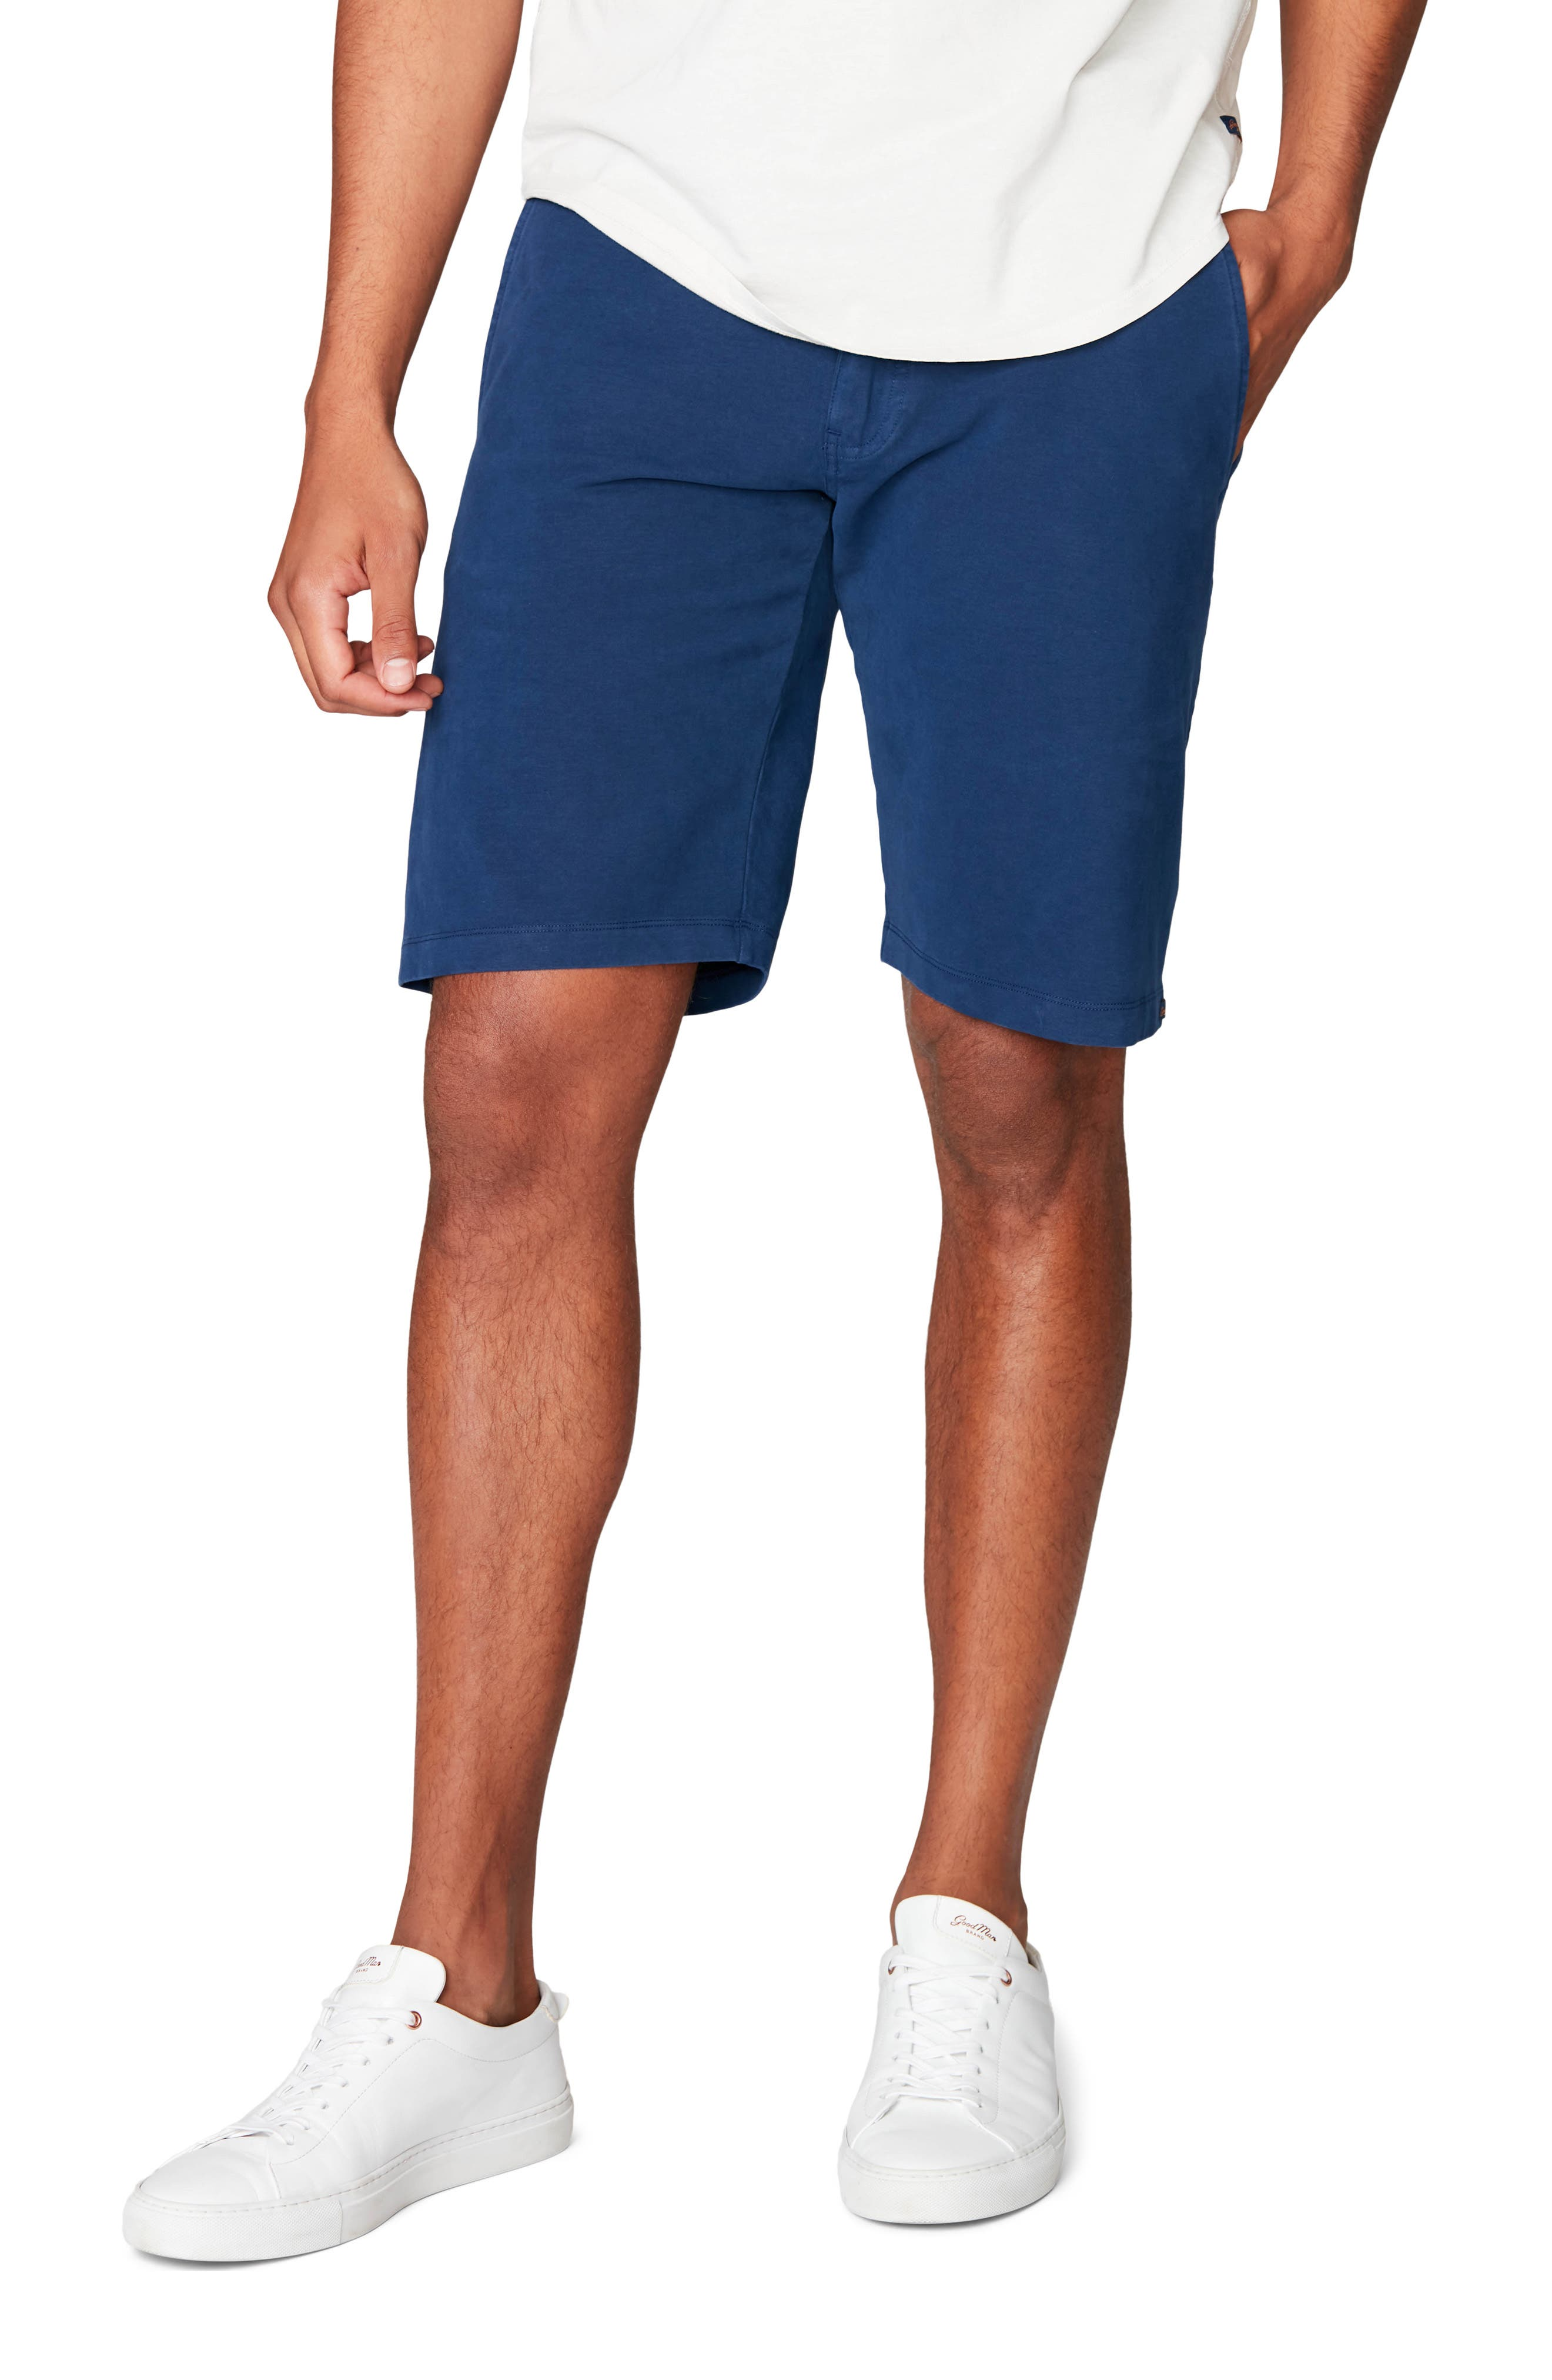 Jogger-style trunks have a tailored look, with supersoft cotton and spandex that offers four-way-stretch and shape recovery for all your active pursuits. Style Name: Good Man Brand Flex Pro Jersey Tulum Trunks. Style Number: 5979841 1. Available in stores.